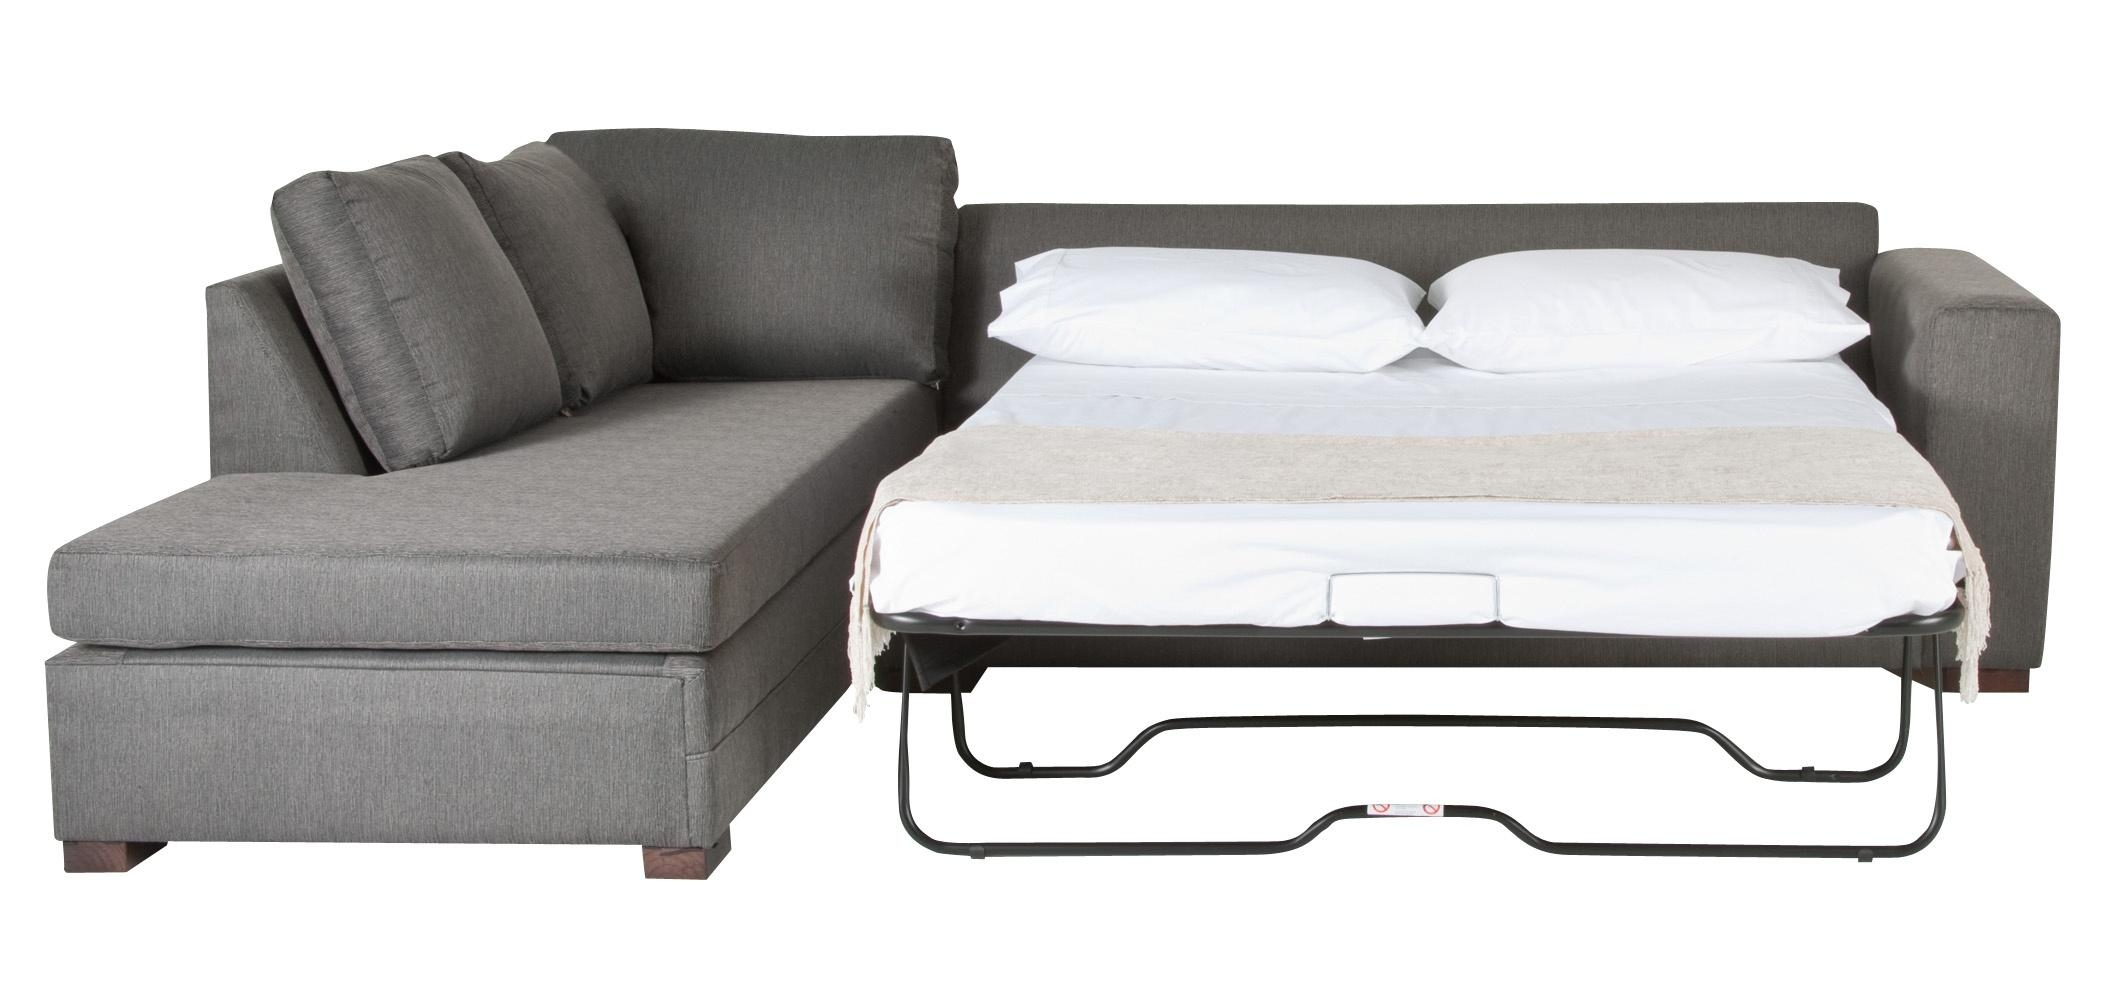 Fold Out Sectional Sleeper Sofa – Hotelsbacau Throughout Braxton Sectional Sofa (Image 9 of 15)